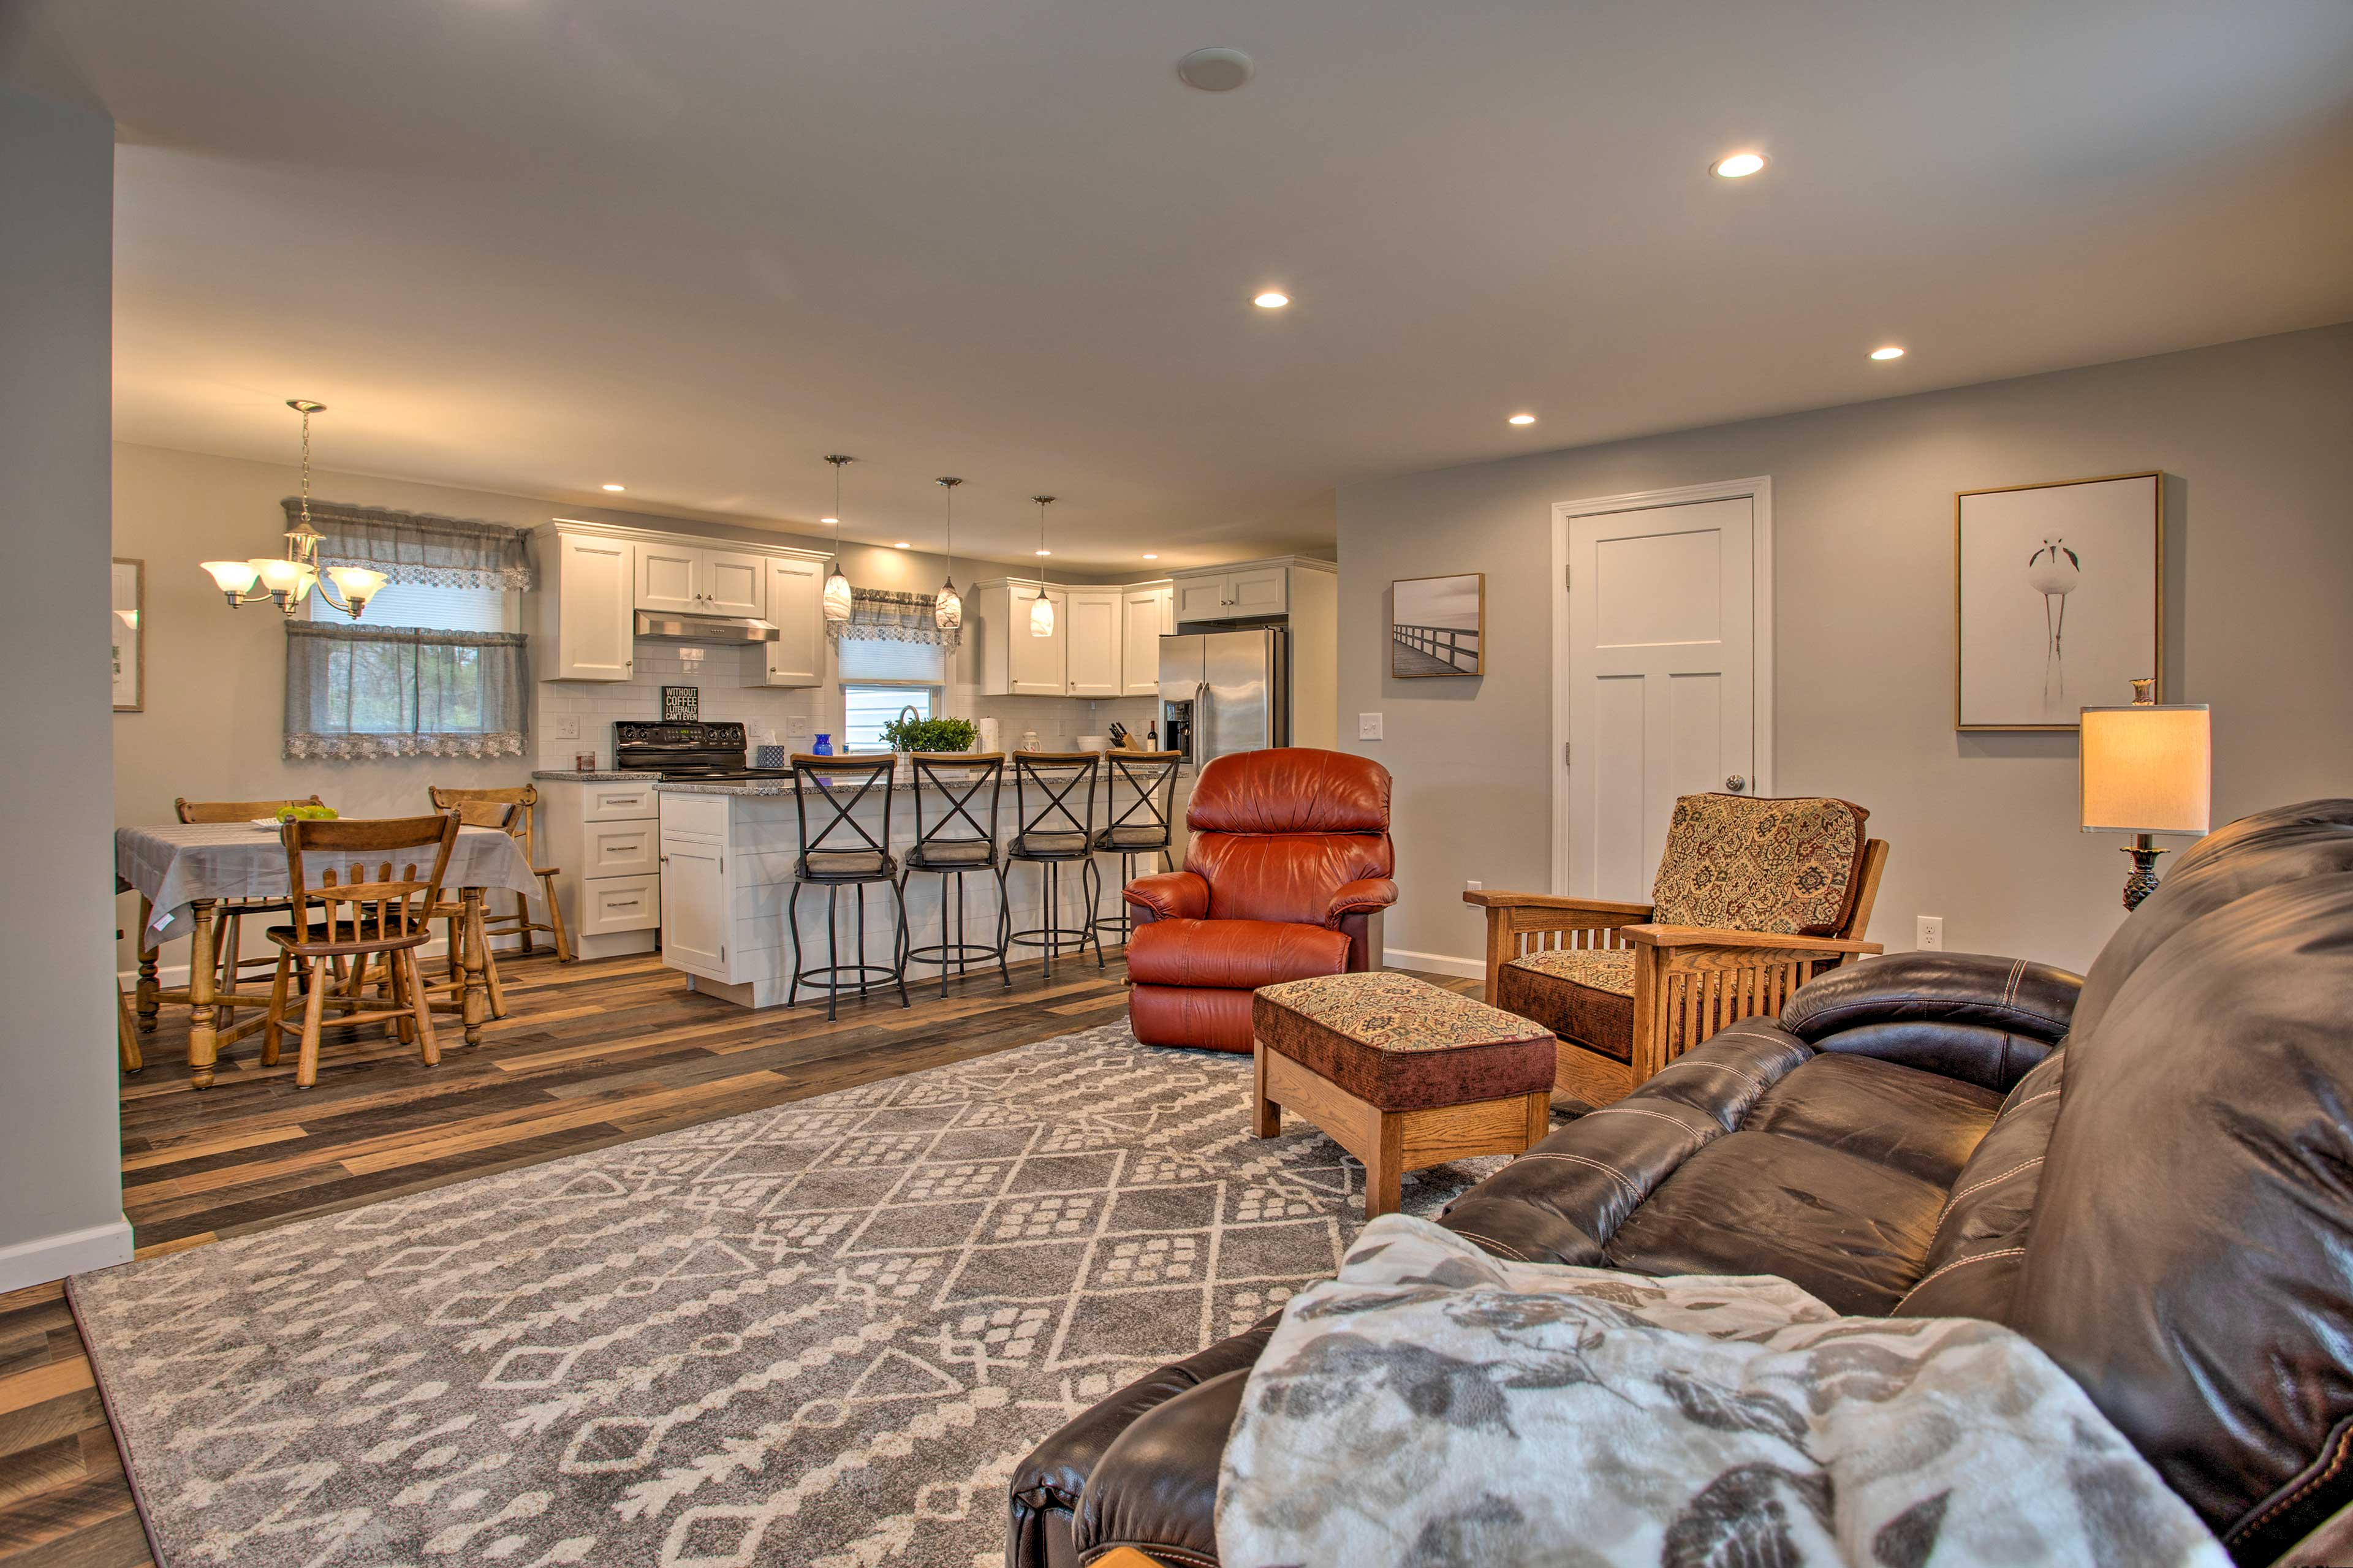 Enjoy the New England style and welcoming interior design.